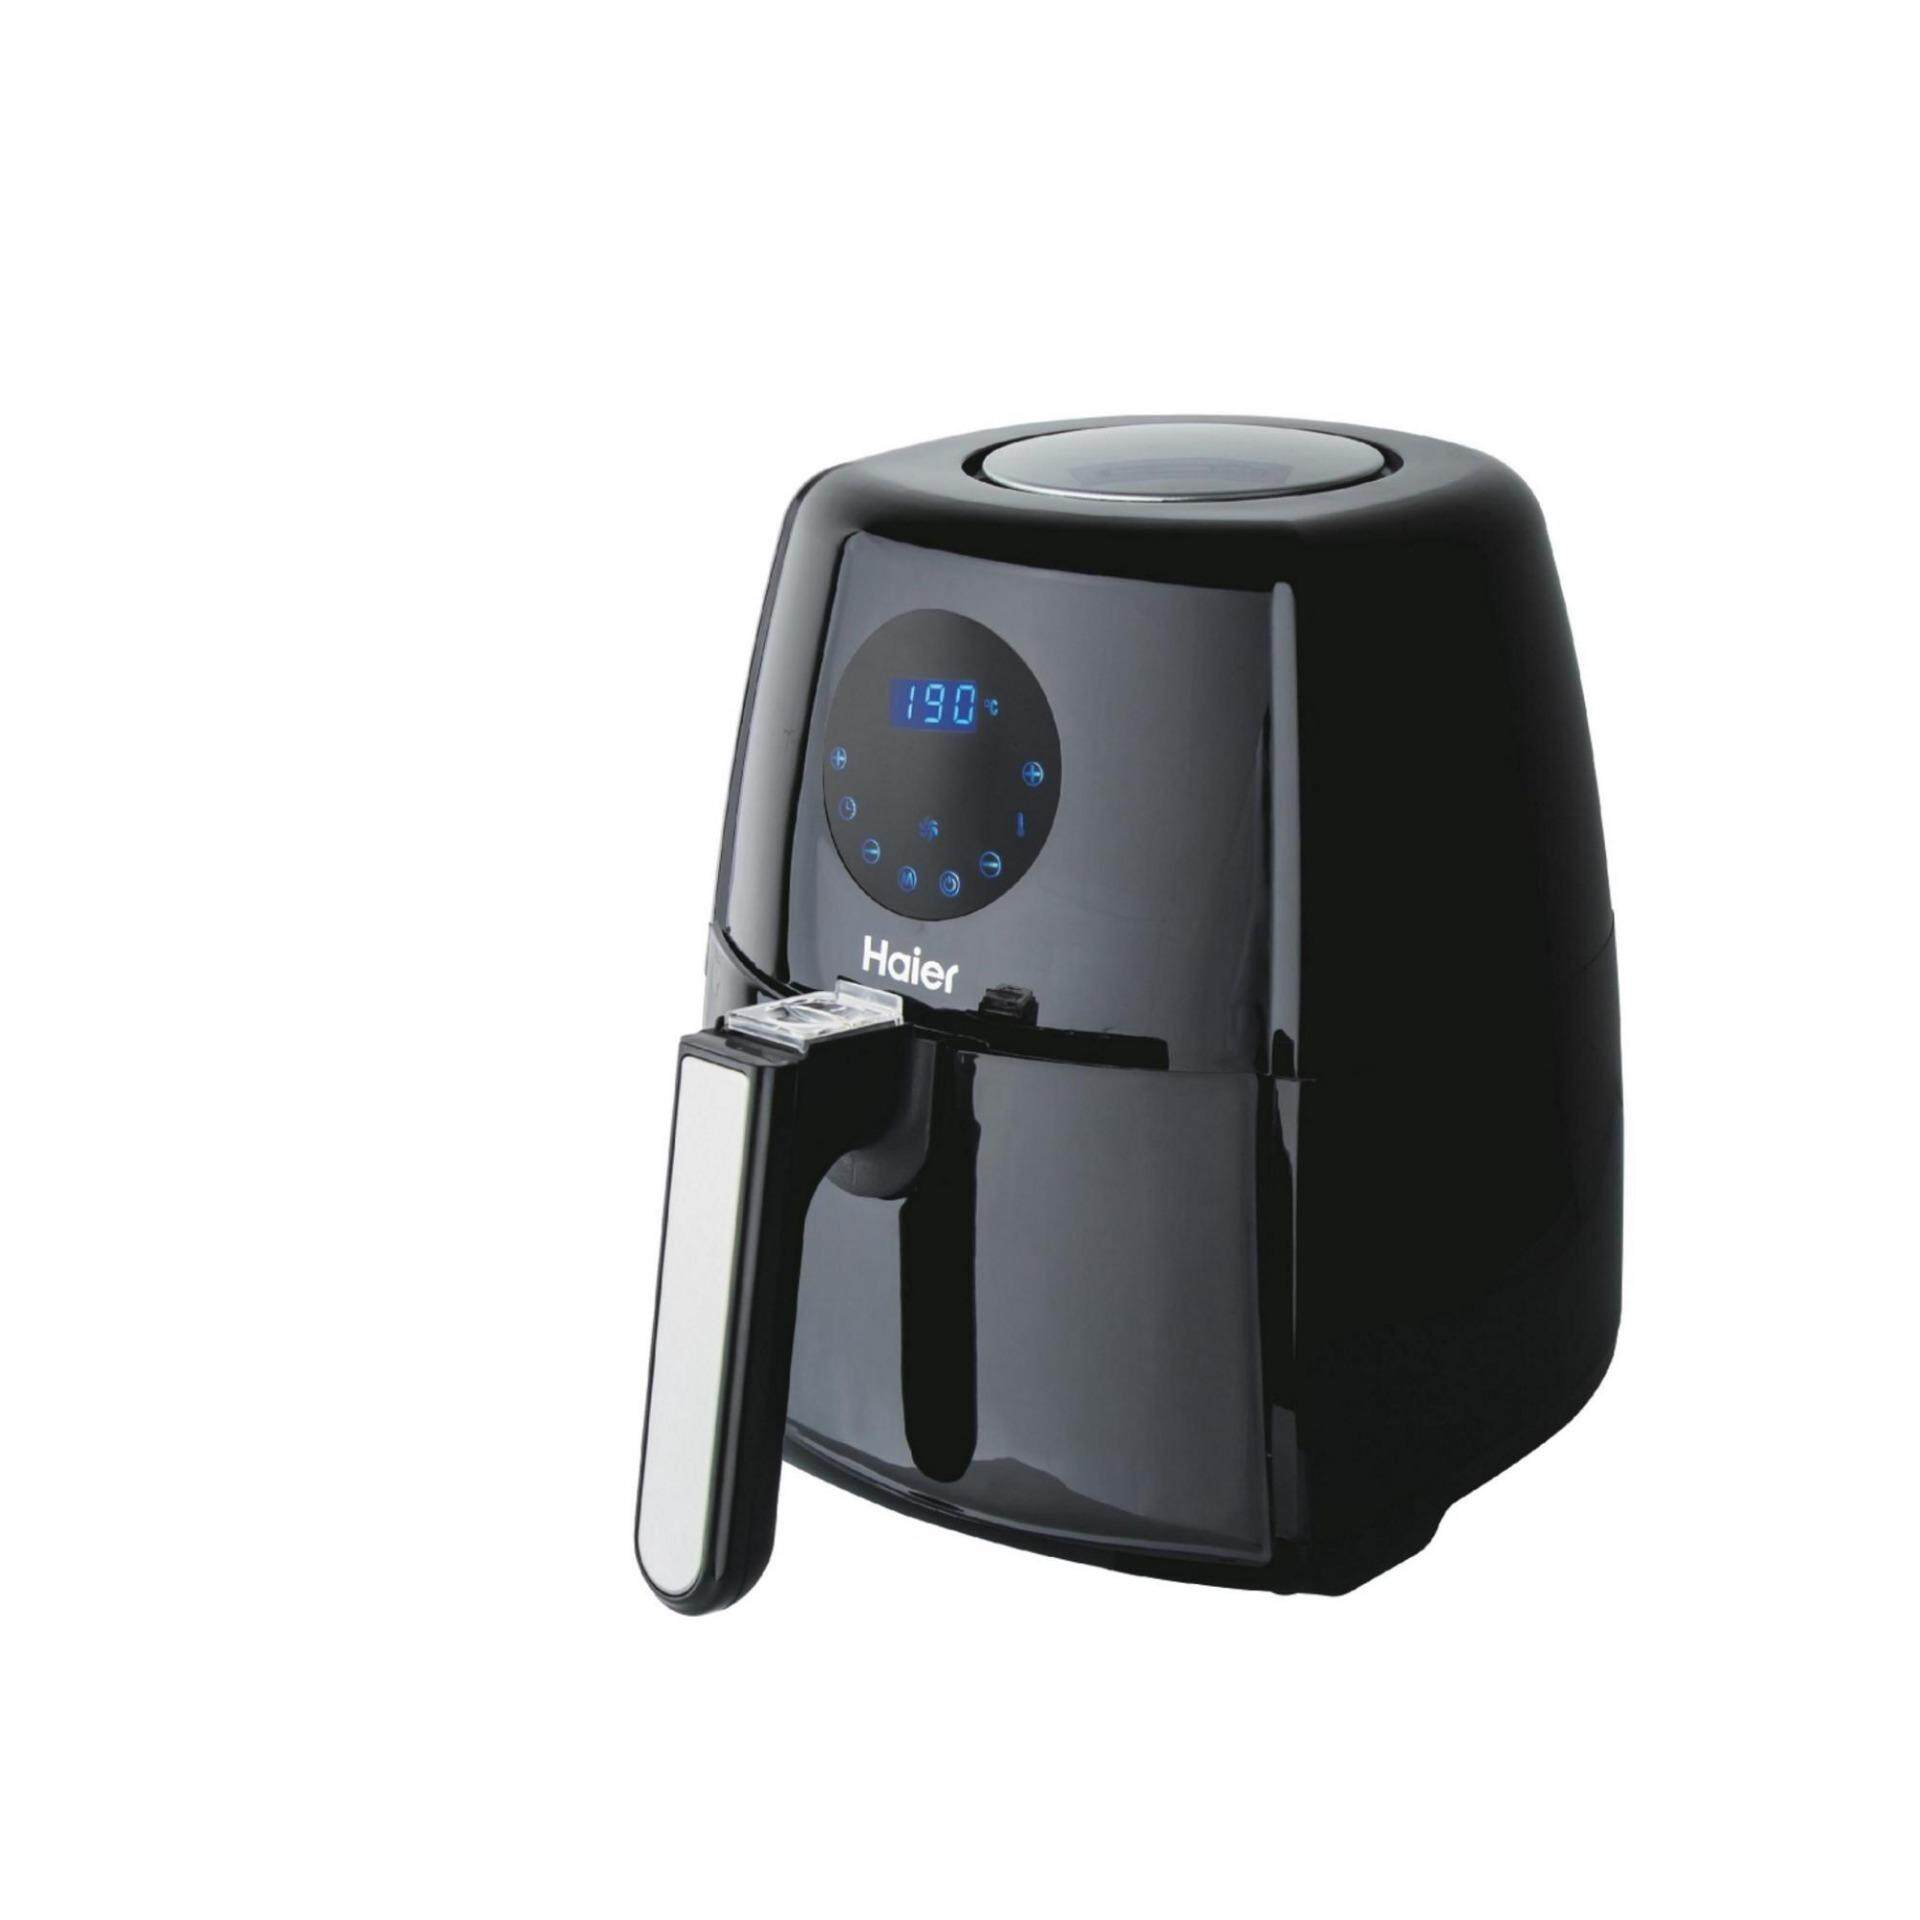 Haier HA-AF253 Air Fryer (2 5L) With Touch Control Panel LED